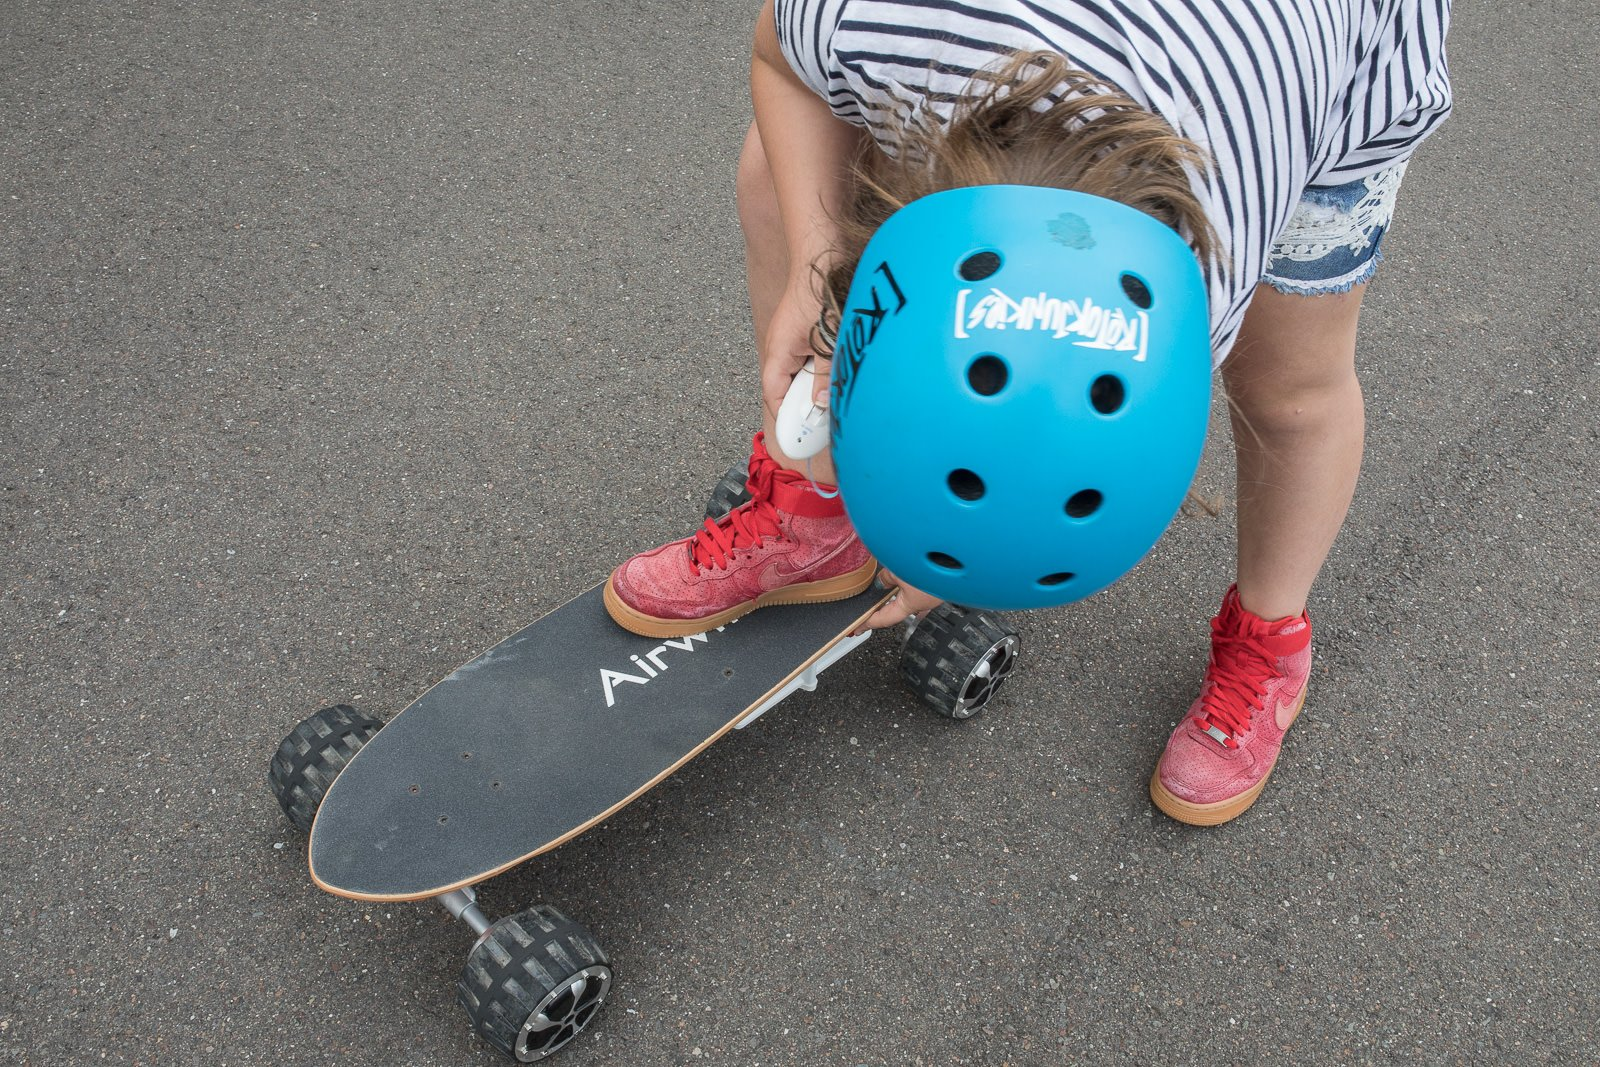 airwheel e board